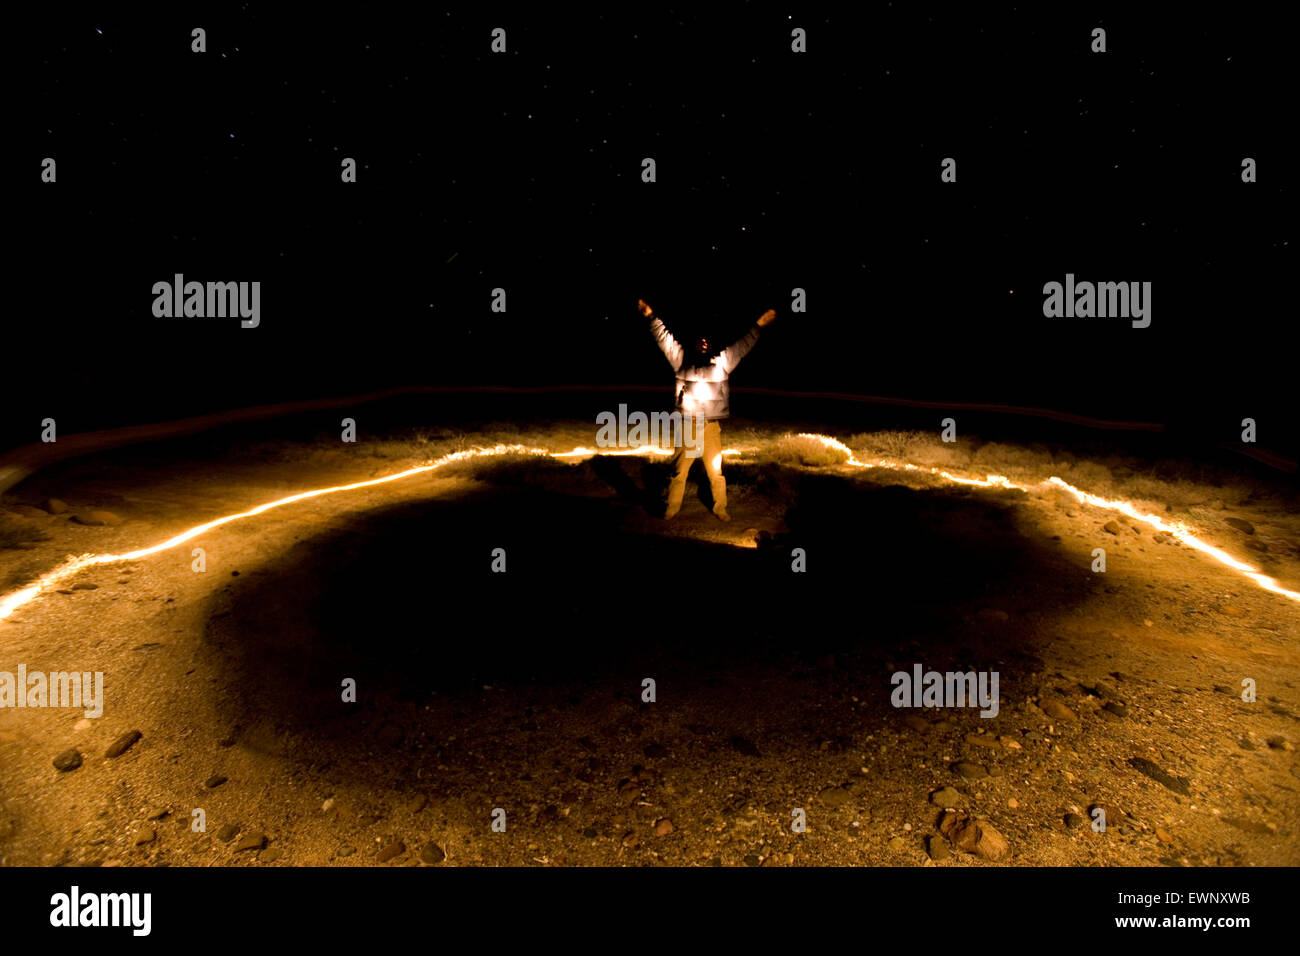 Adult man standing in a circle of light at night - Stock Image